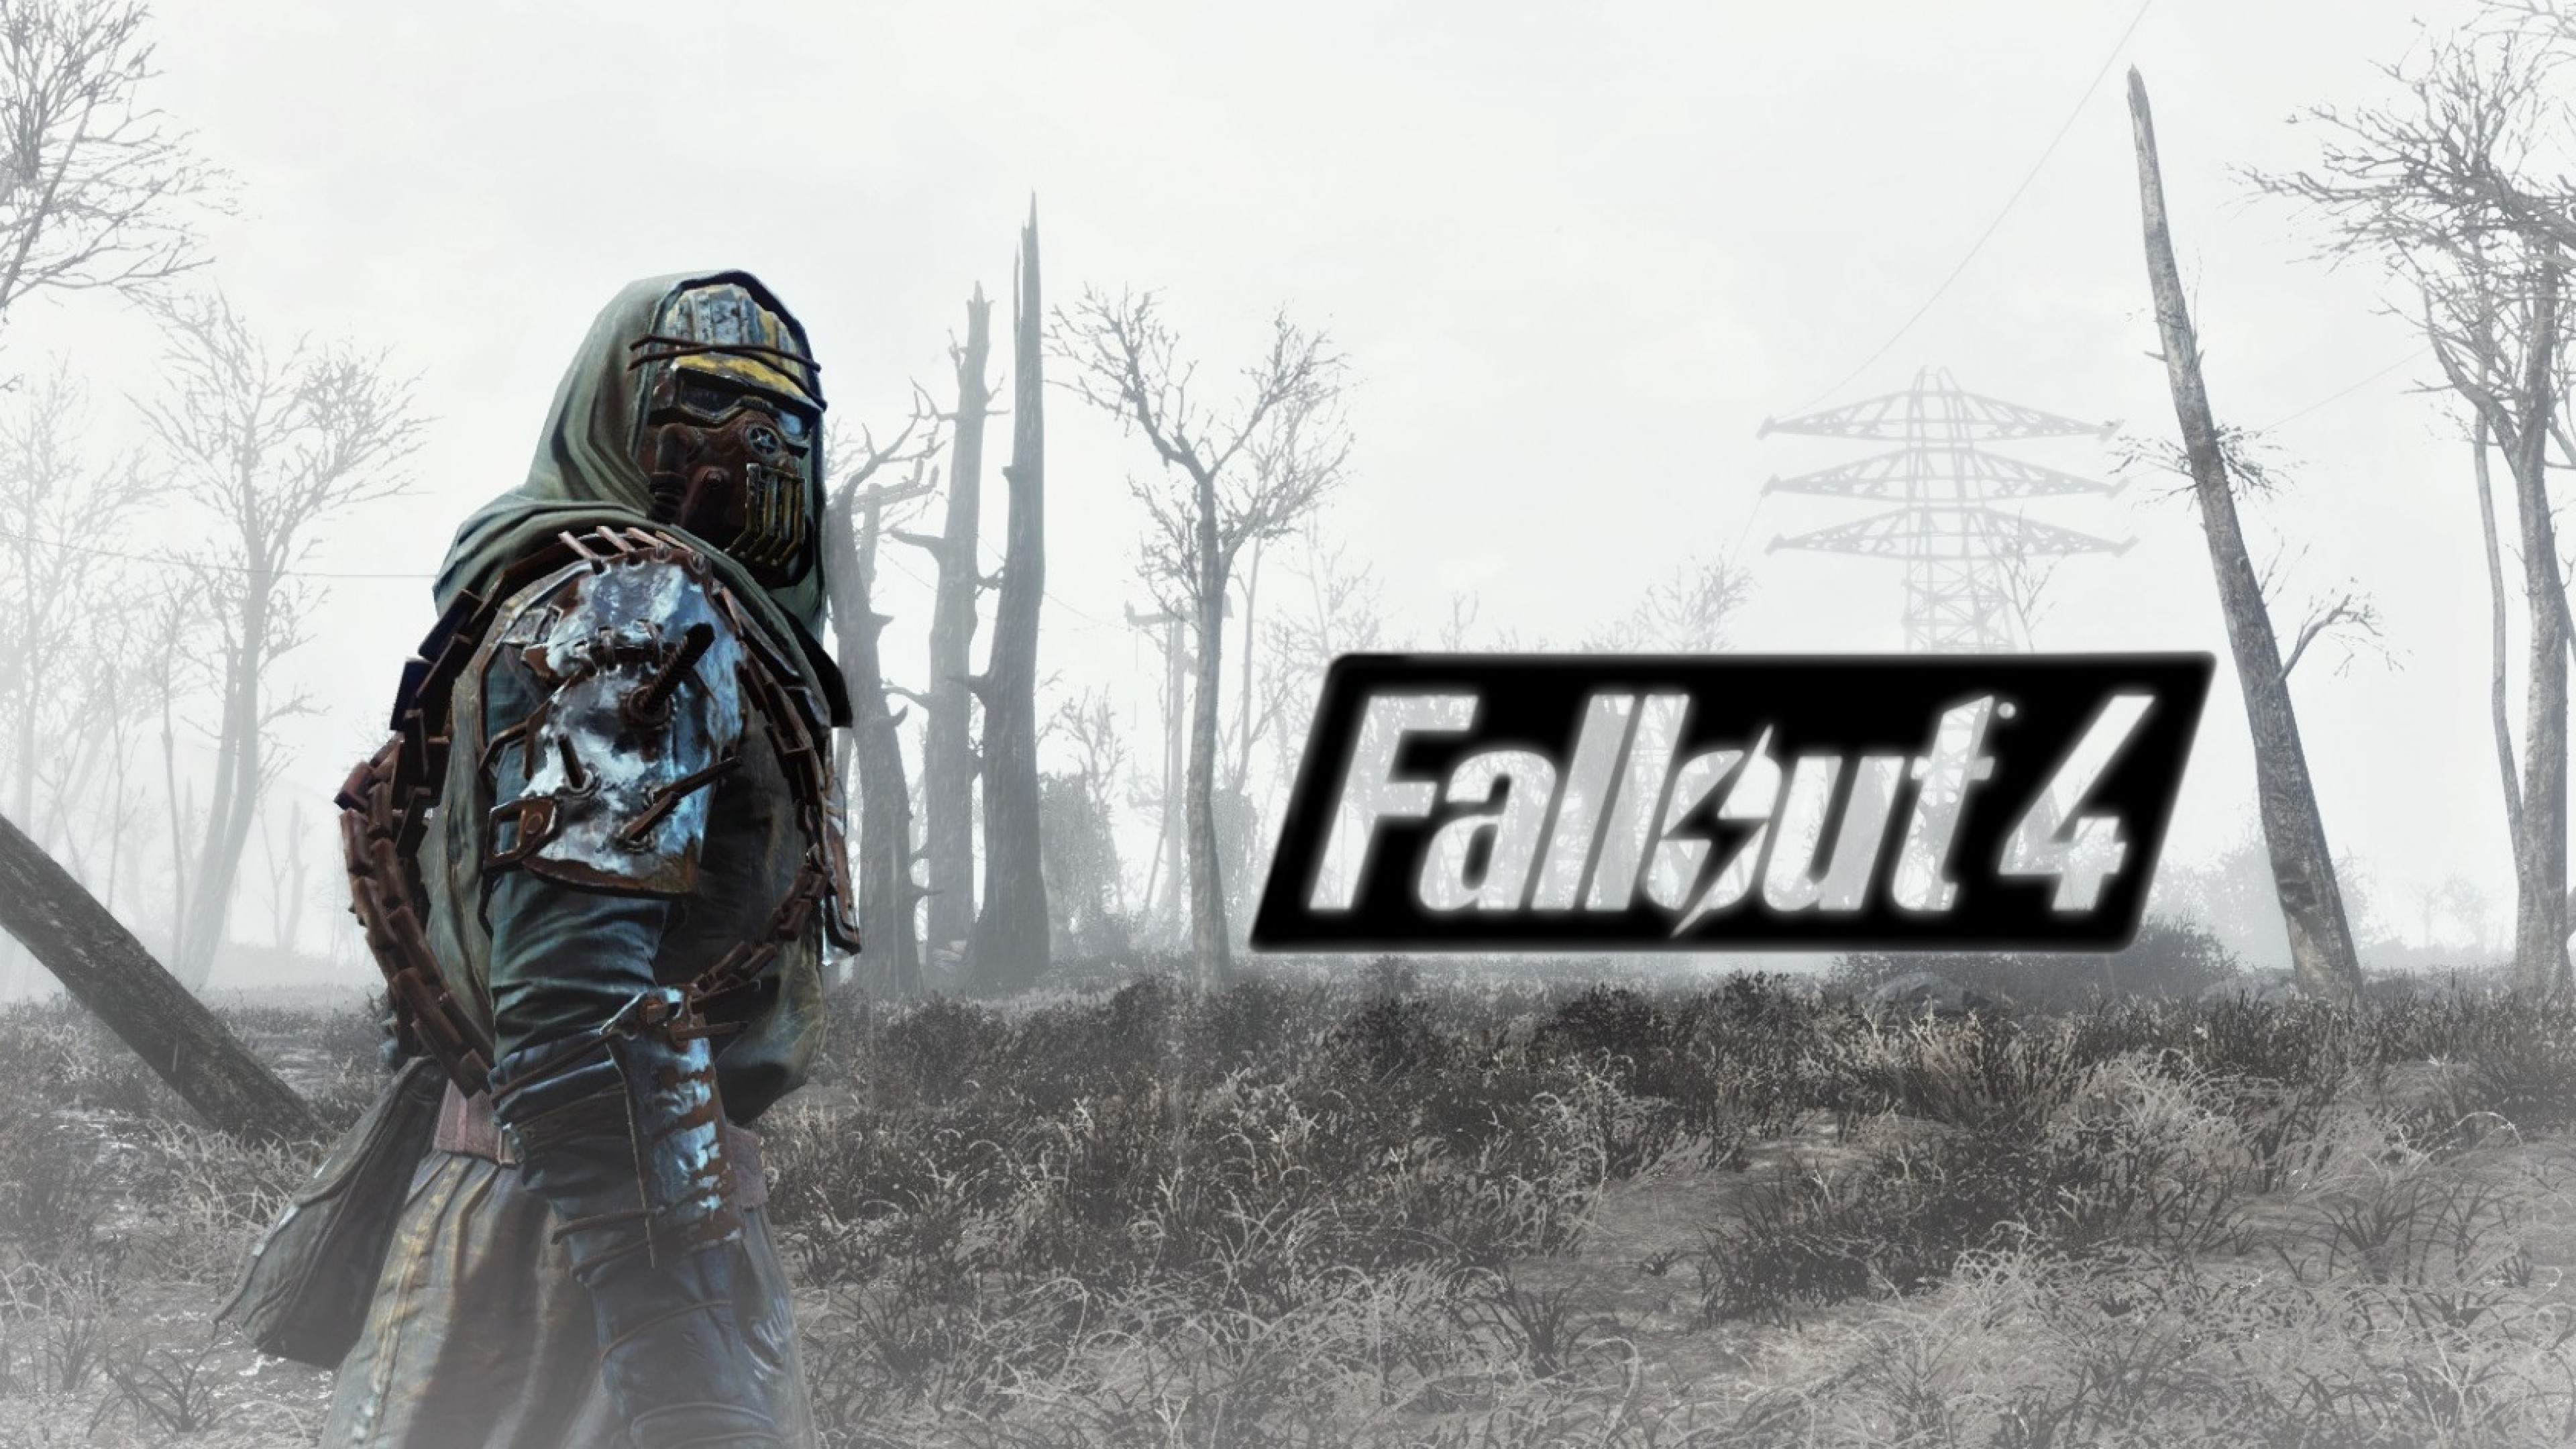 4k Fallout 4 Wallpaper 56 Images